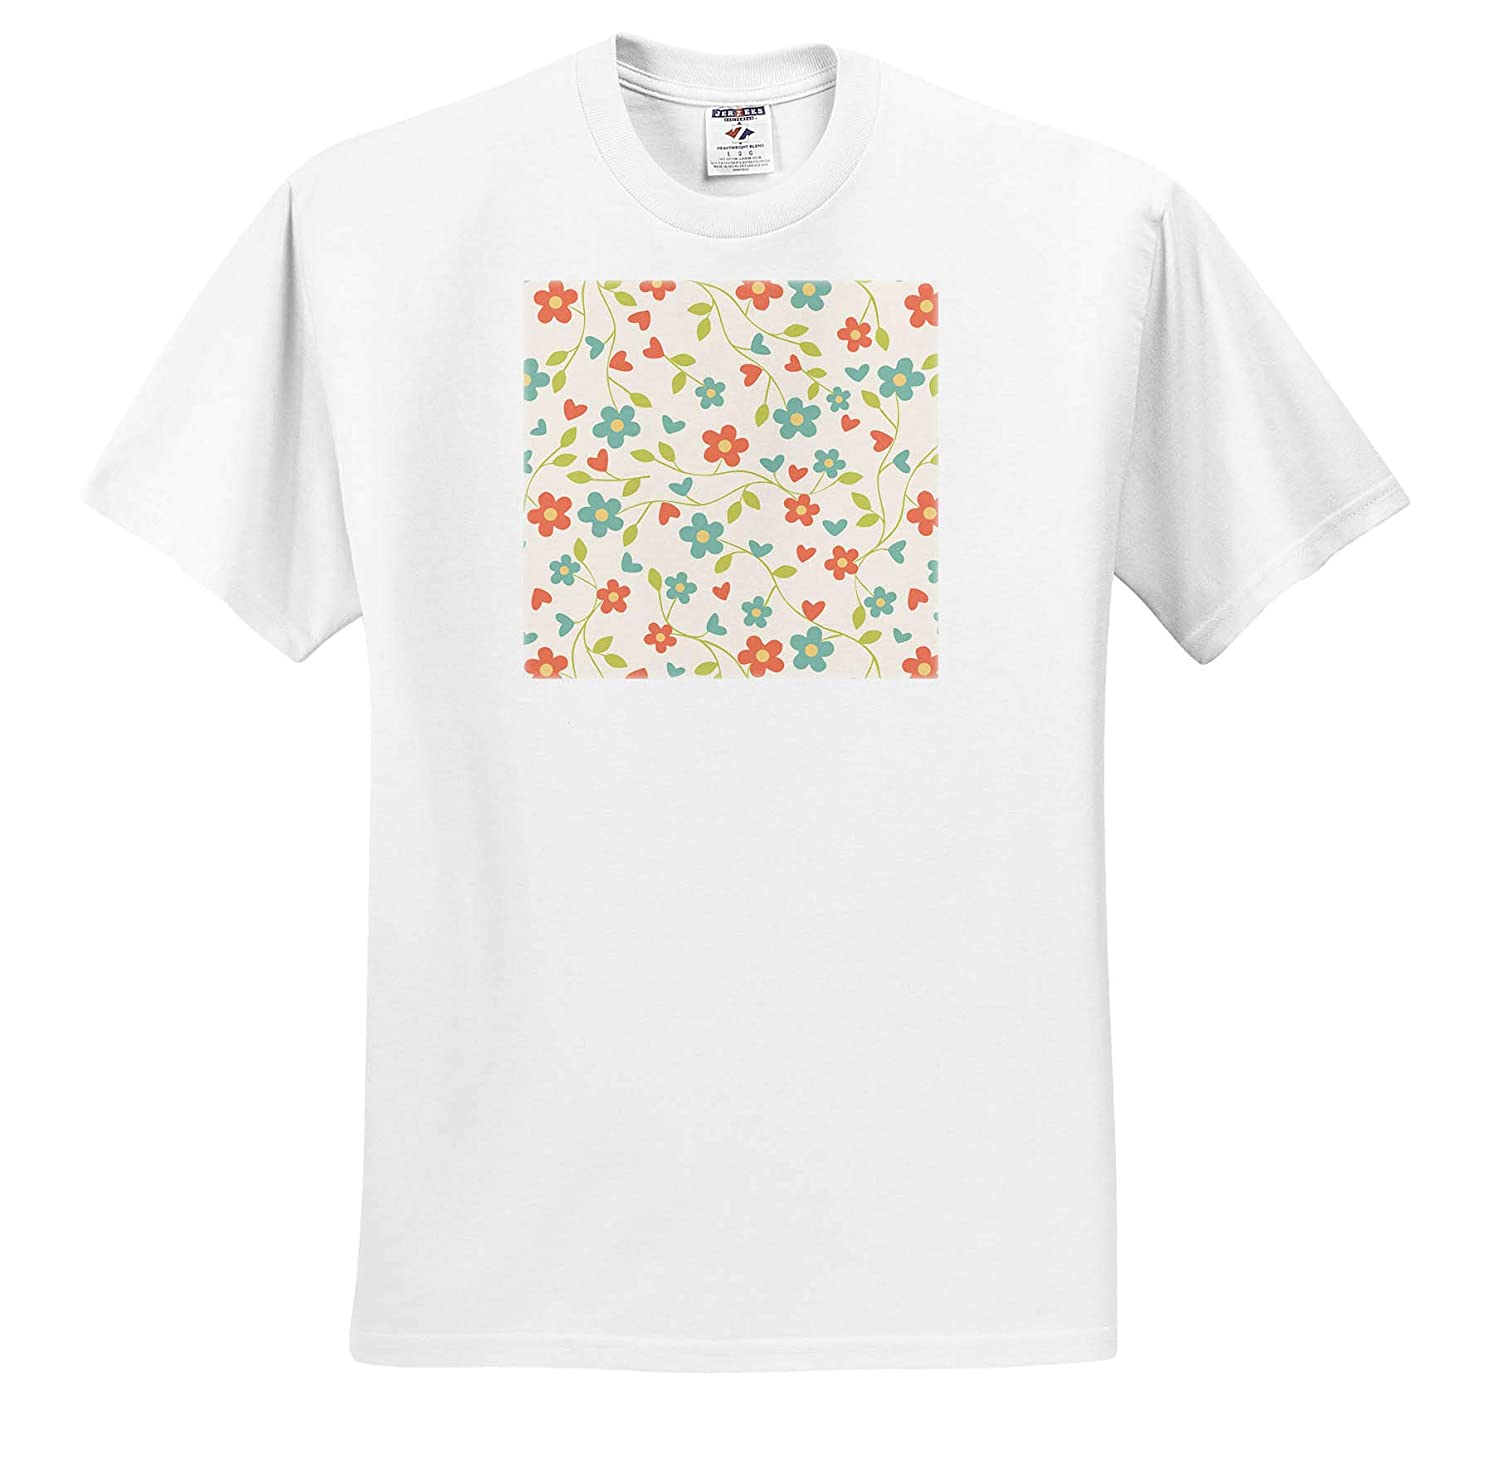 T-Shirts Floral and Tree Abstracts Image of Small Orange and Aqua Floral Repeat Pattern 3dRose Lens Art by Florene